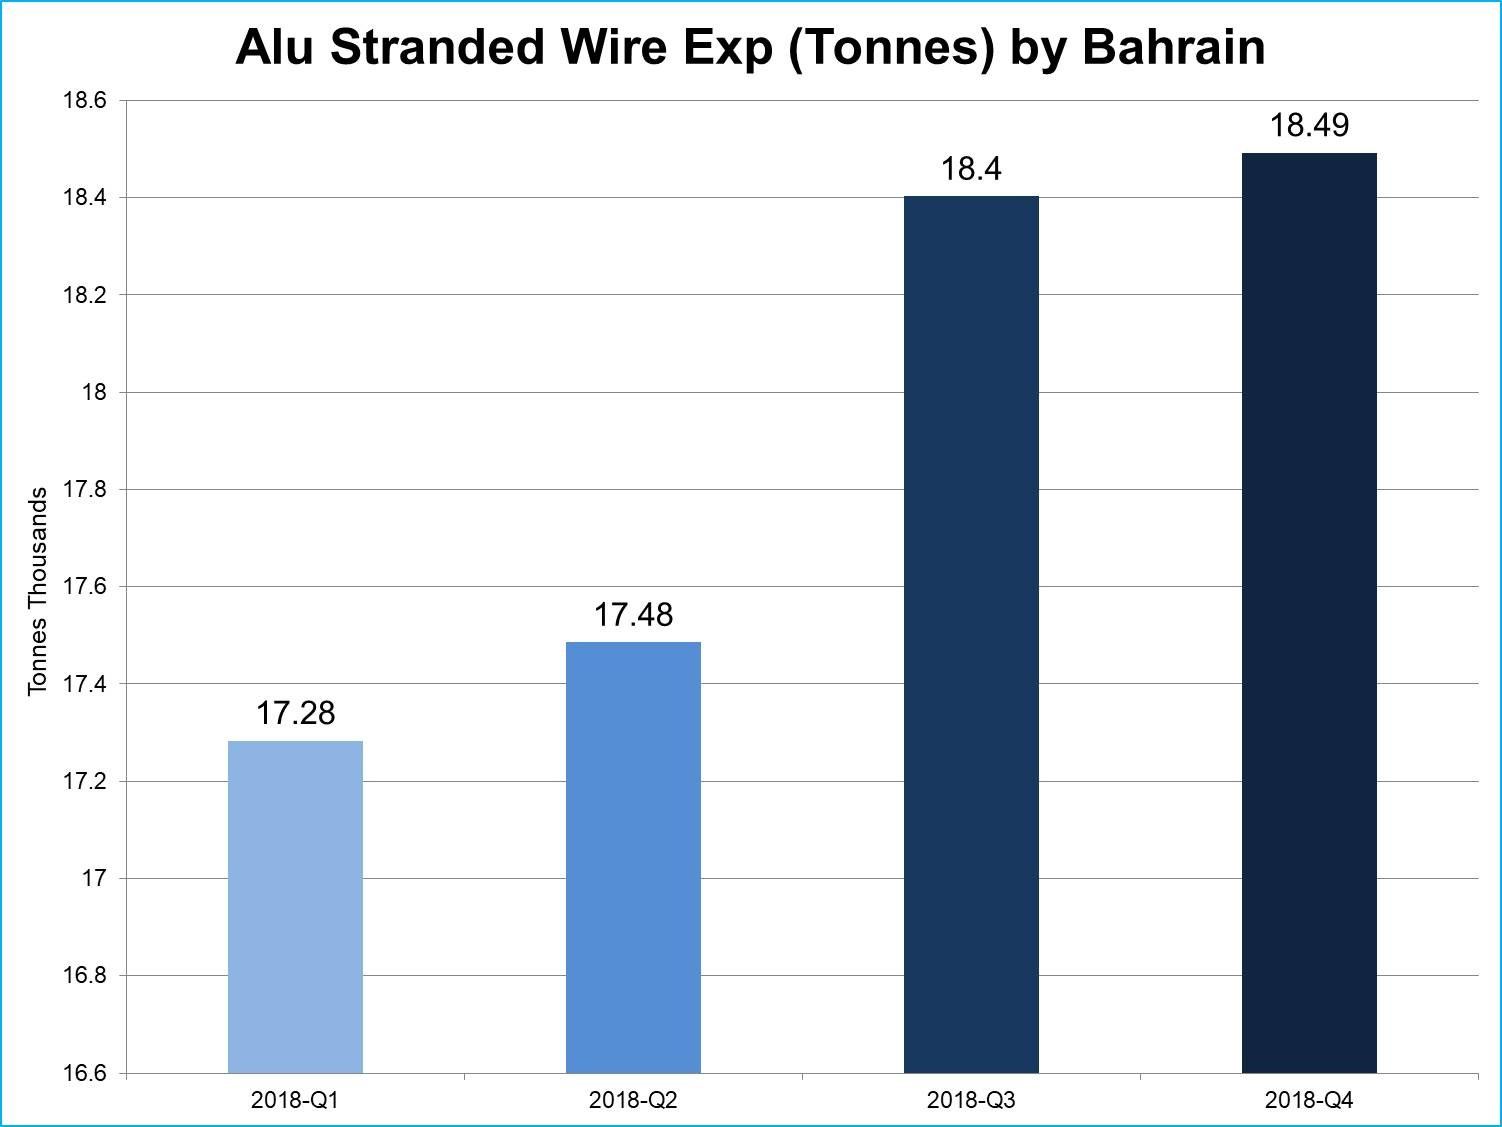 Bahrain's aluminium stranded wire exports up 43% in 2017